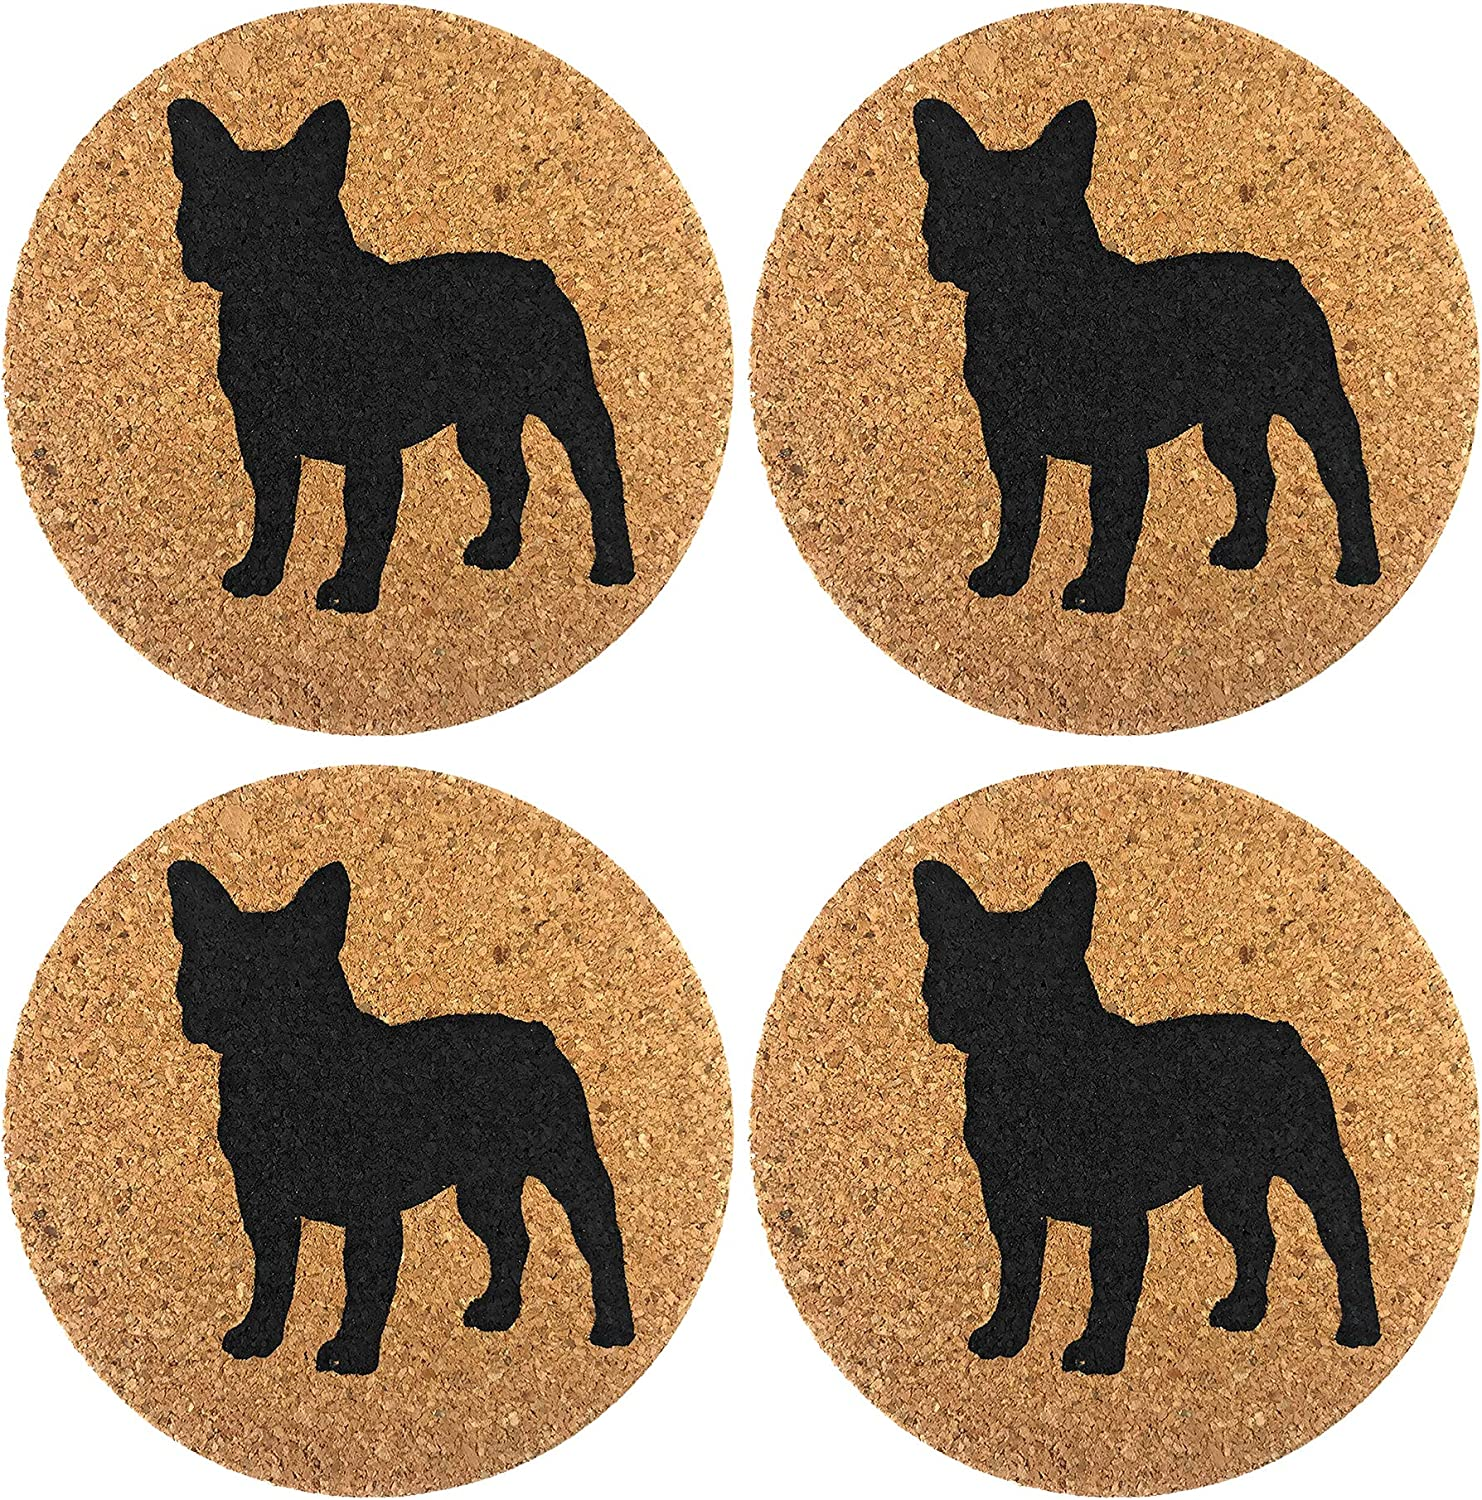 French Bulldog Dog Gift Cork 10 Pack Drink Coasters Set - Kitchen Bar Table  Decor - Perfect Decoration for Frenchie Dog Lovers